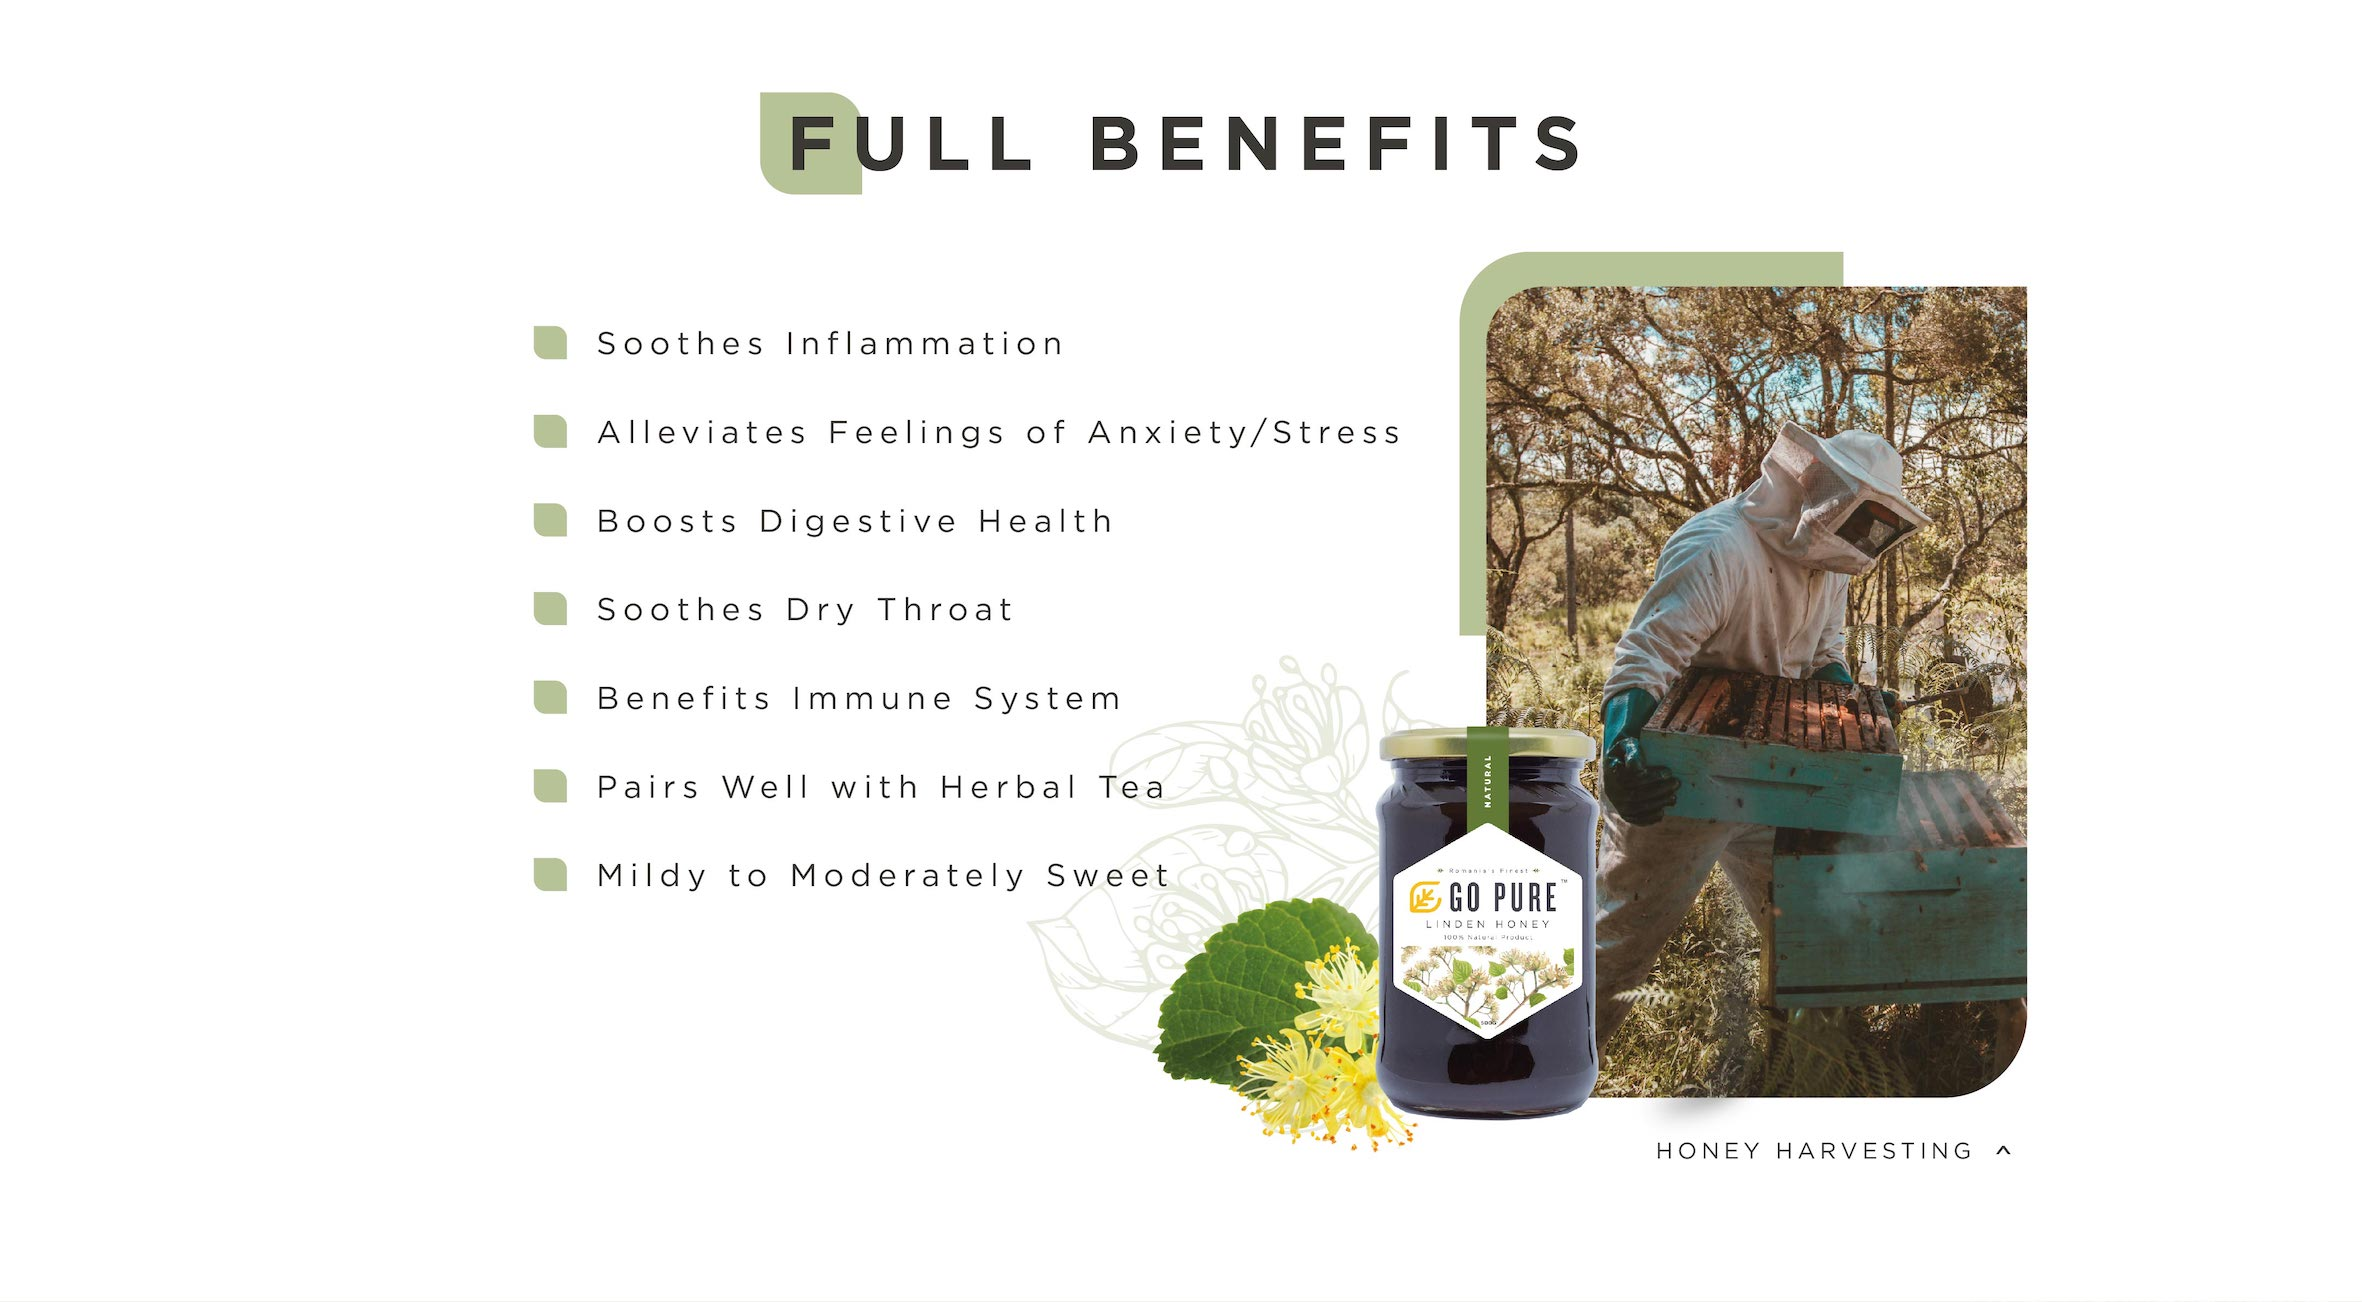 full benefits: soothes inflammation, alleviates feeling of anxiety or stress, boosts digestive health, soothes dry throat, benefits immune system, pairs well with herbal tea, mildy to moderately sweetness.